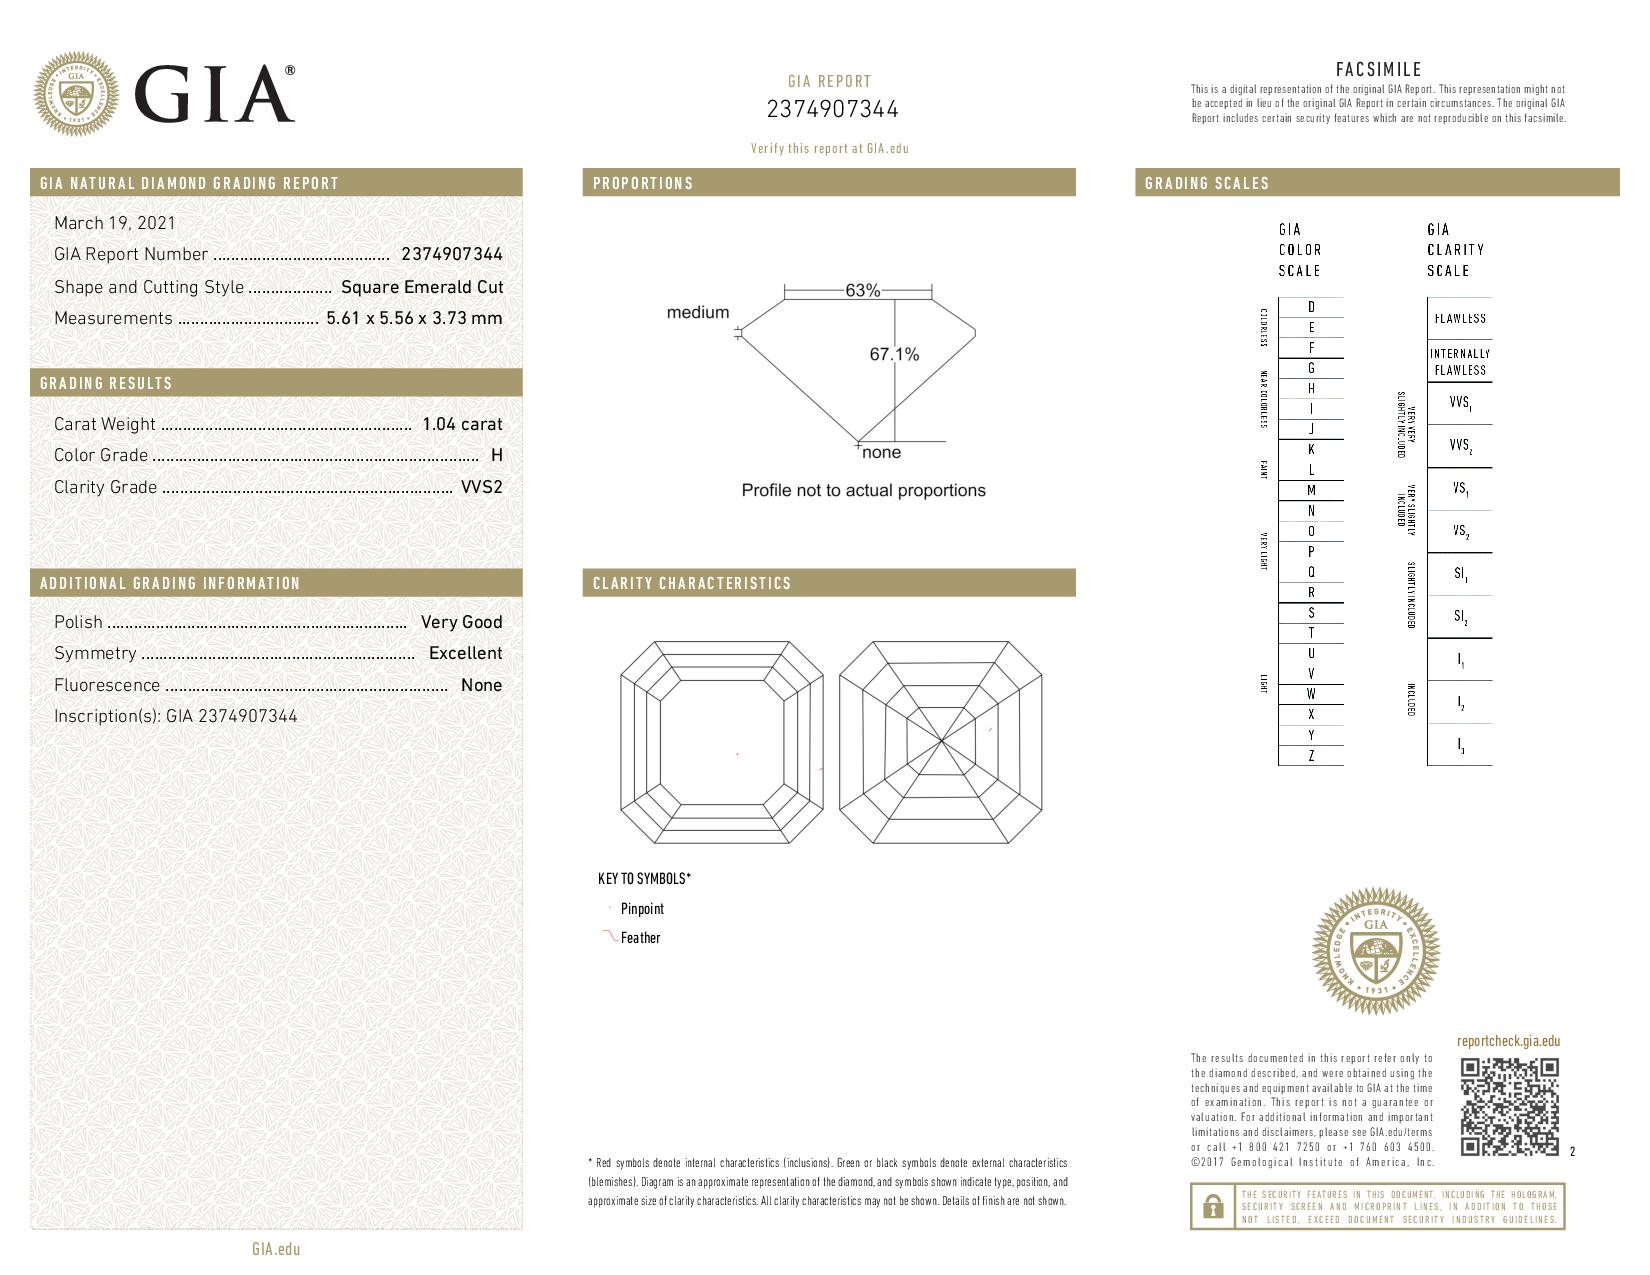 This is a 1.04 carat asscher shape, H color, VVS2 clarity natural diamond accompanied by a GIA grading report.